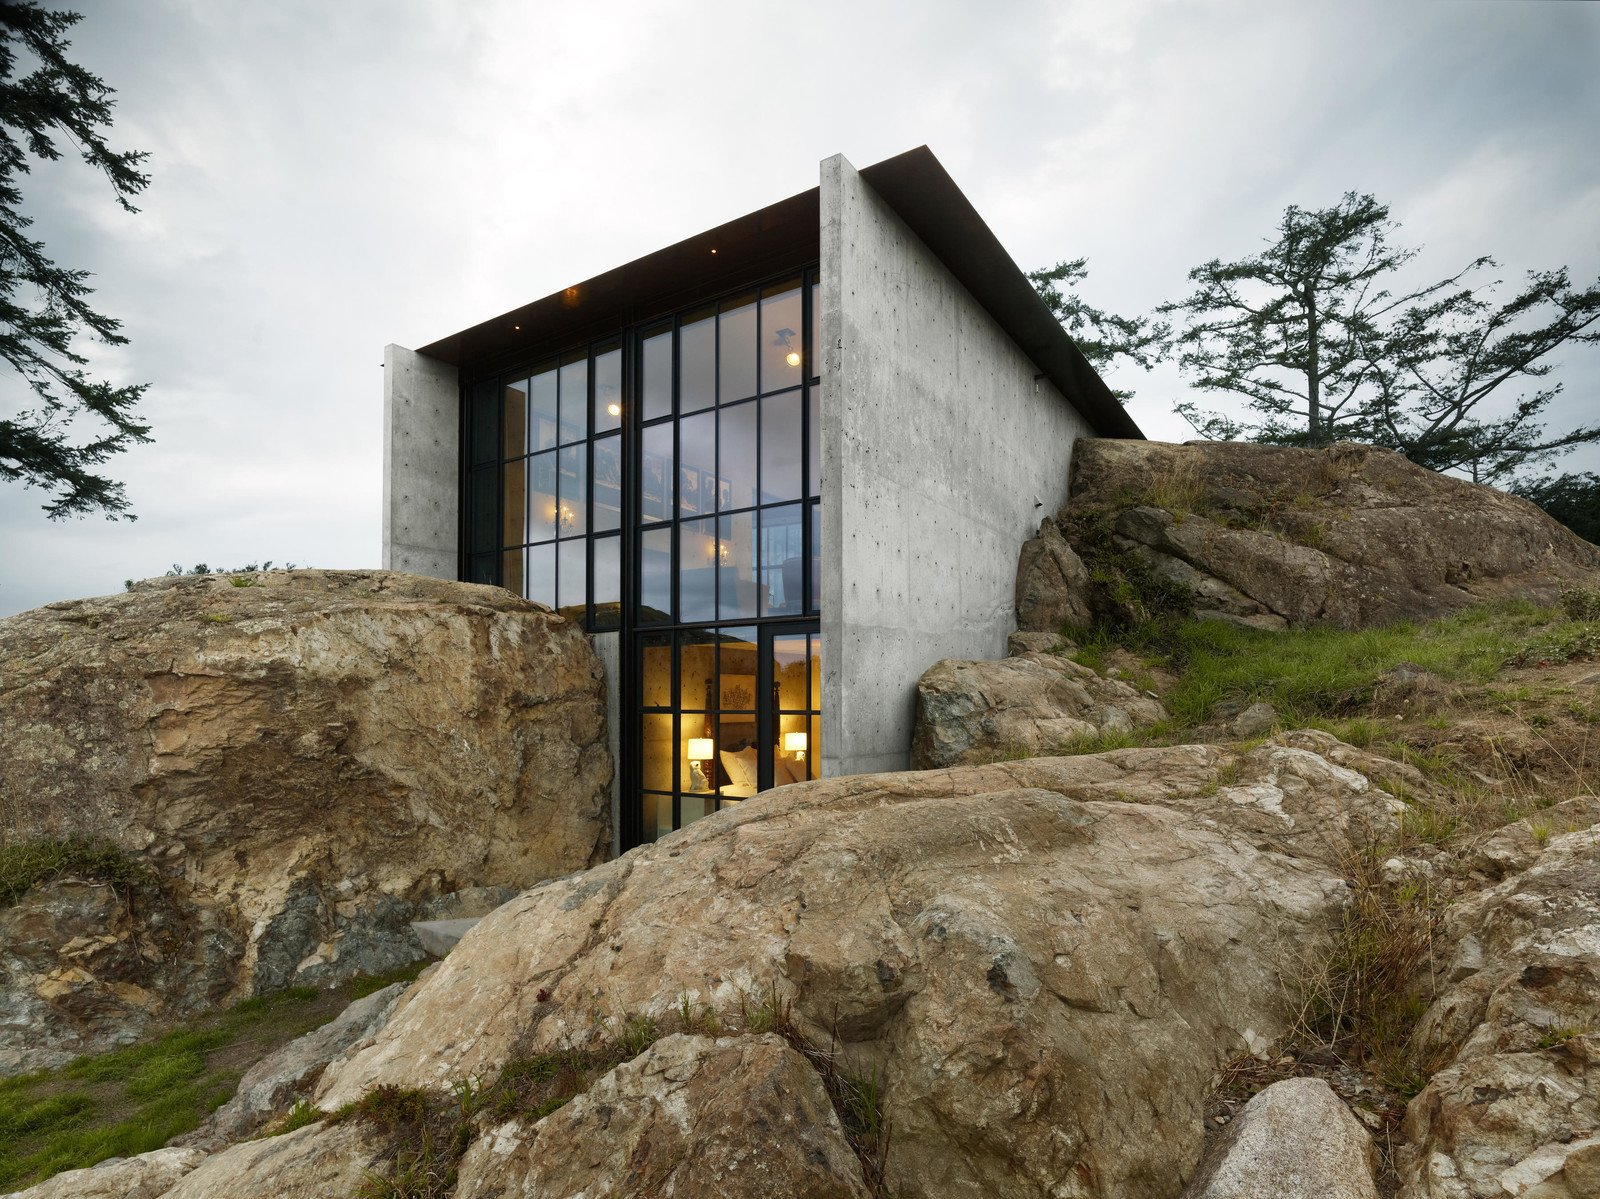 Conceived as a bunker nestled into the rock, the Pierre, the French word for stone, celebrates the materiality of the site. The owner's affection for a stone outcropping on her property and the views from its peak inspired the design of this house which from certain angles—almost disappears into nature.